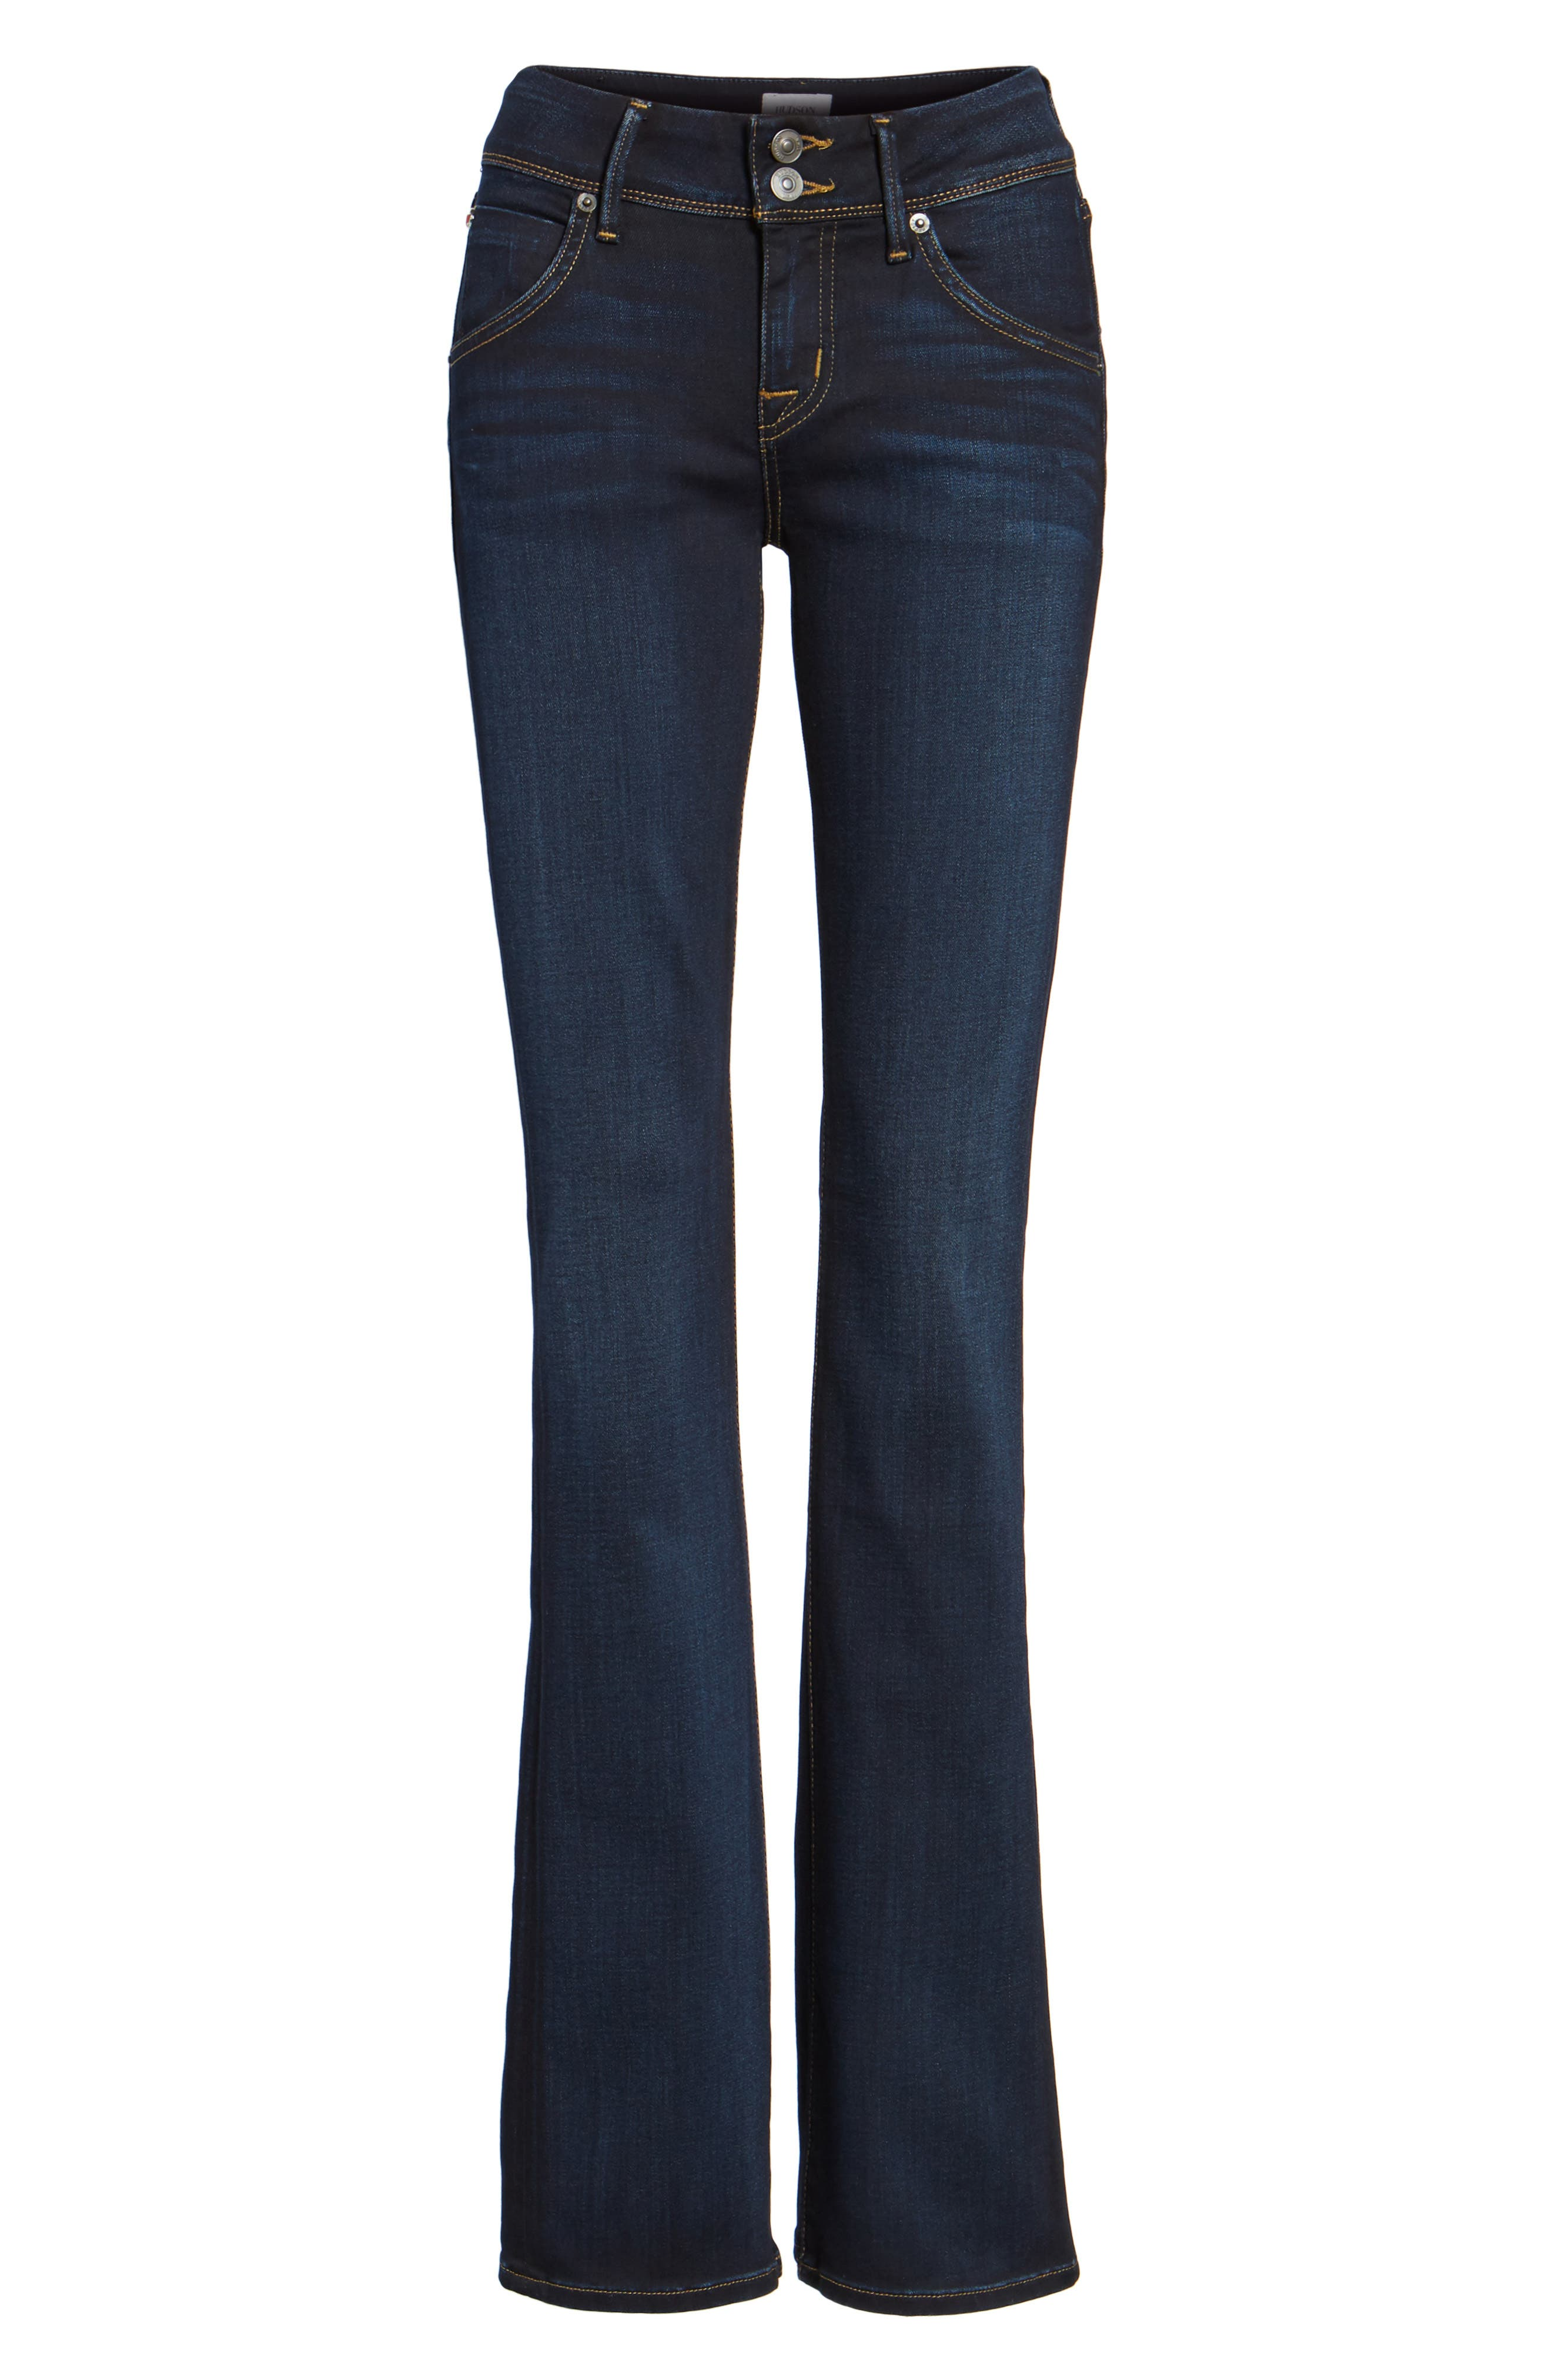 'Elysian - Beth' Baby Bootcut Jeans,                             Main thumbnail 1, color,                             ORACLE